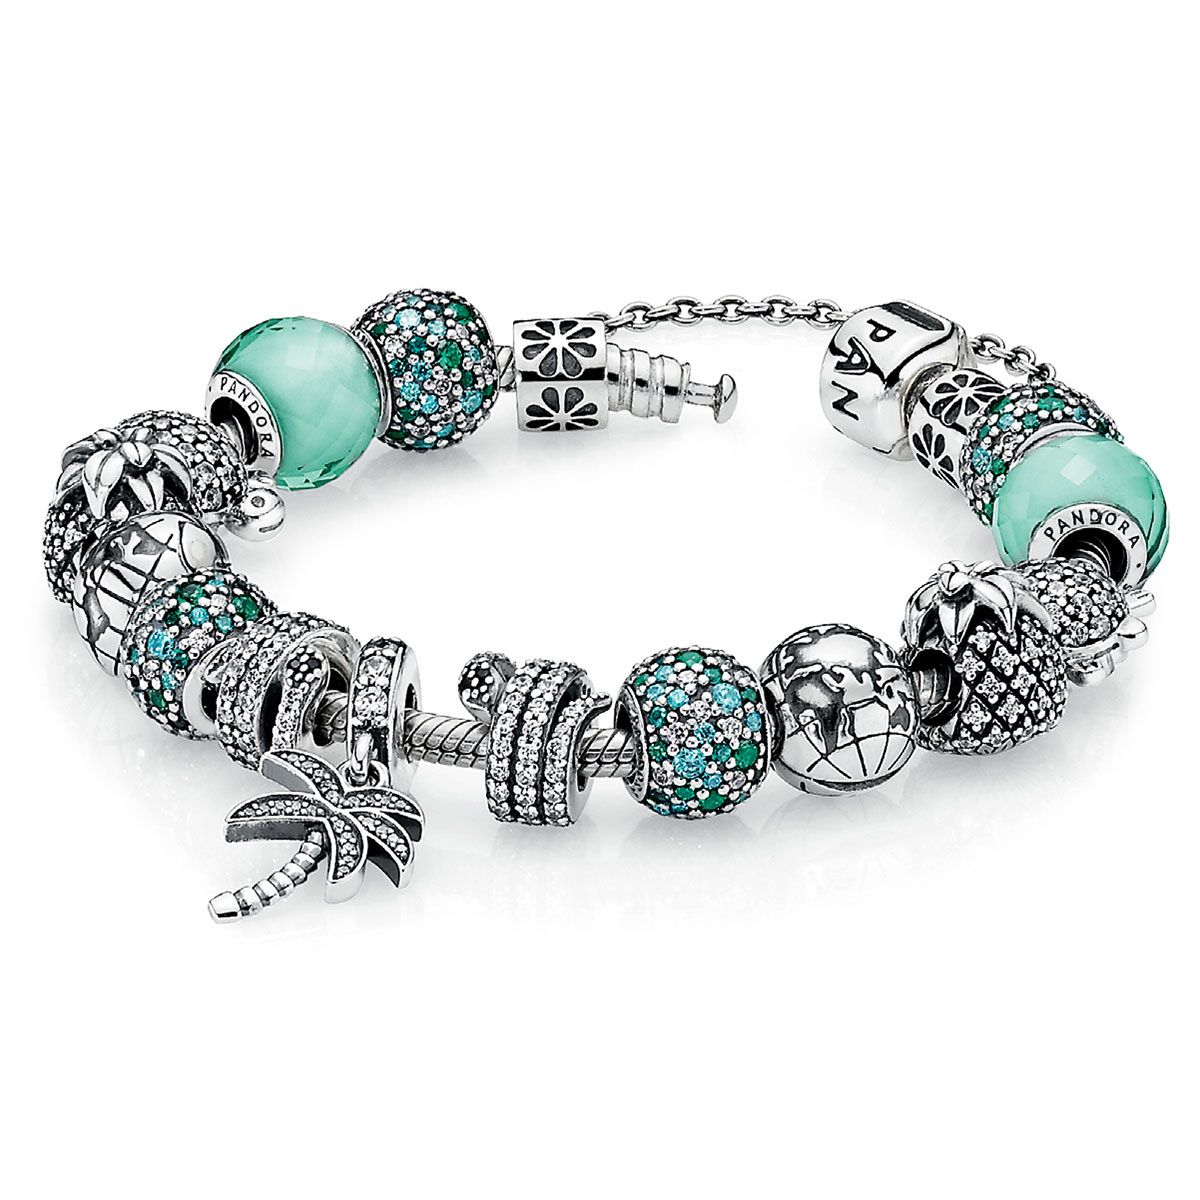 Pandora Caribbean Cool Charm Bracelet  I Can Practically Feel The Cool  Ocean Breeze And The